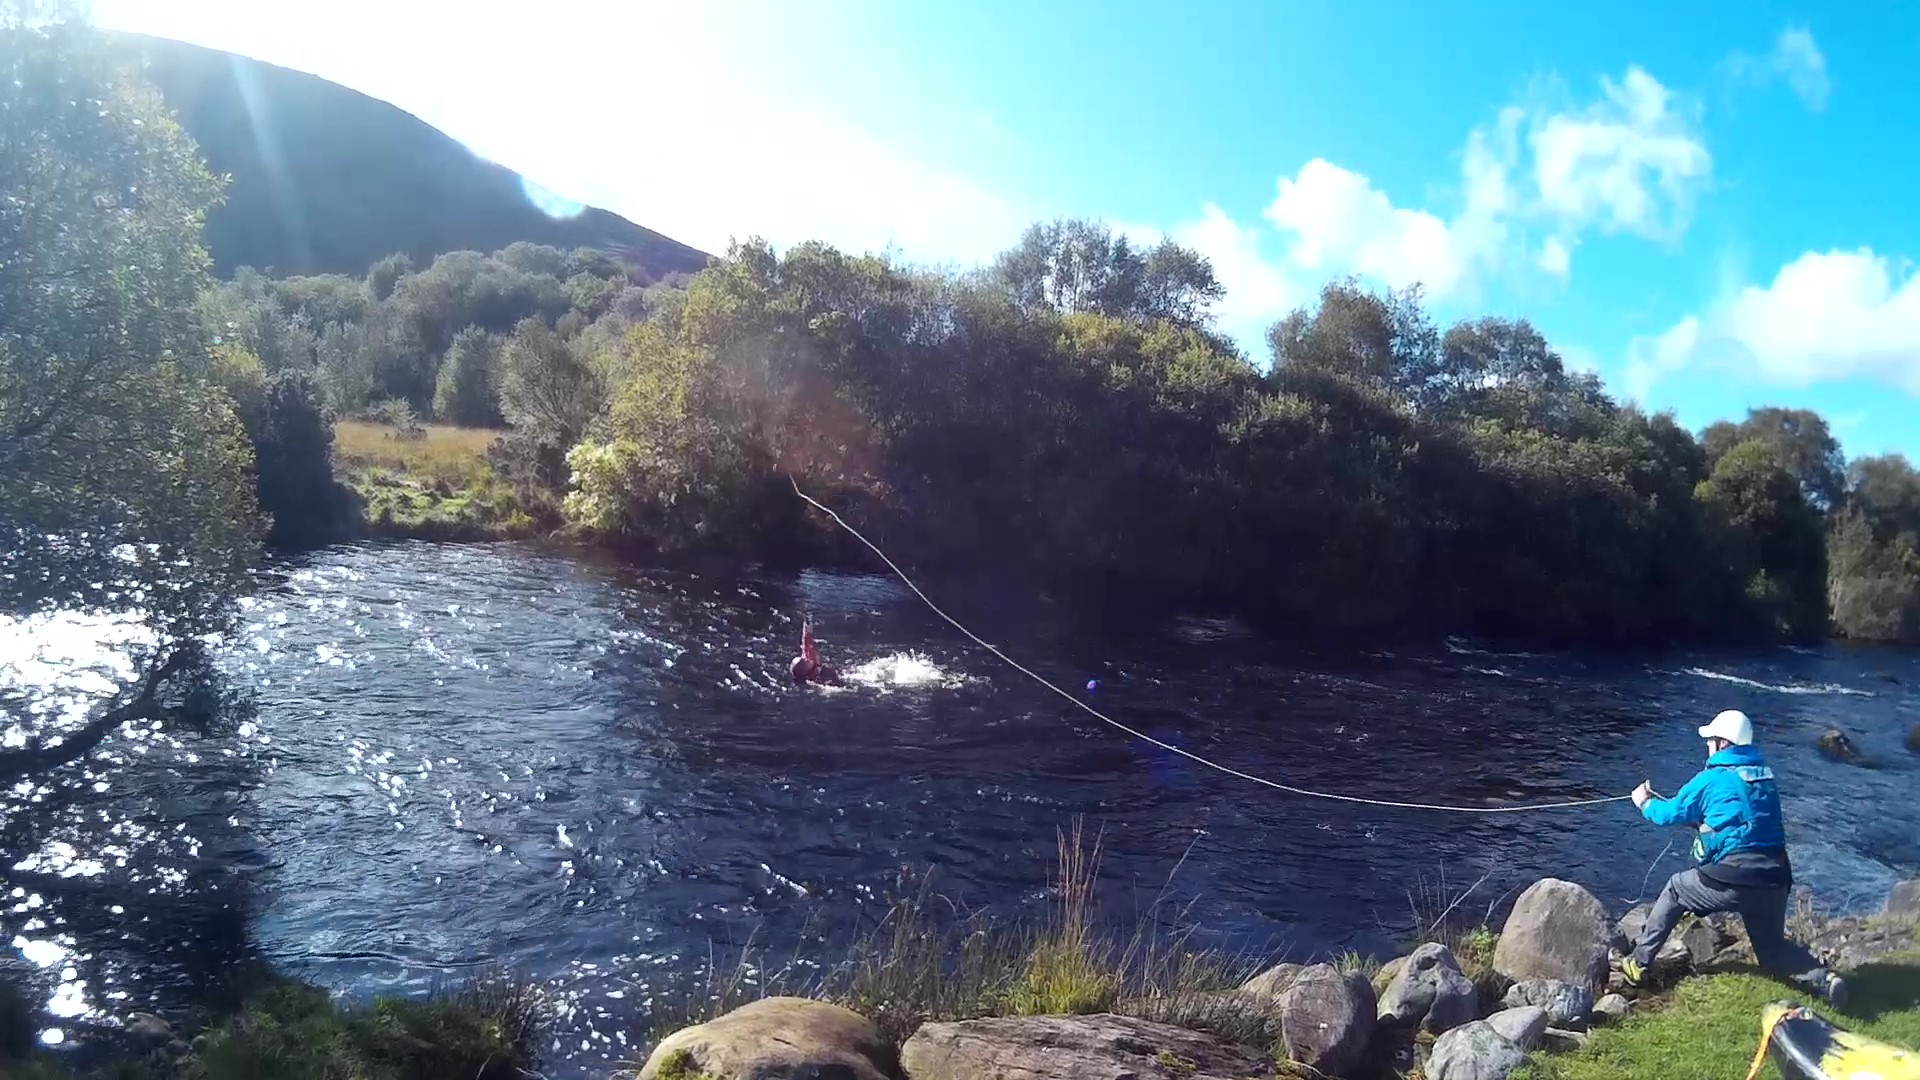 Kerry Canoe Club river safety and rescue training